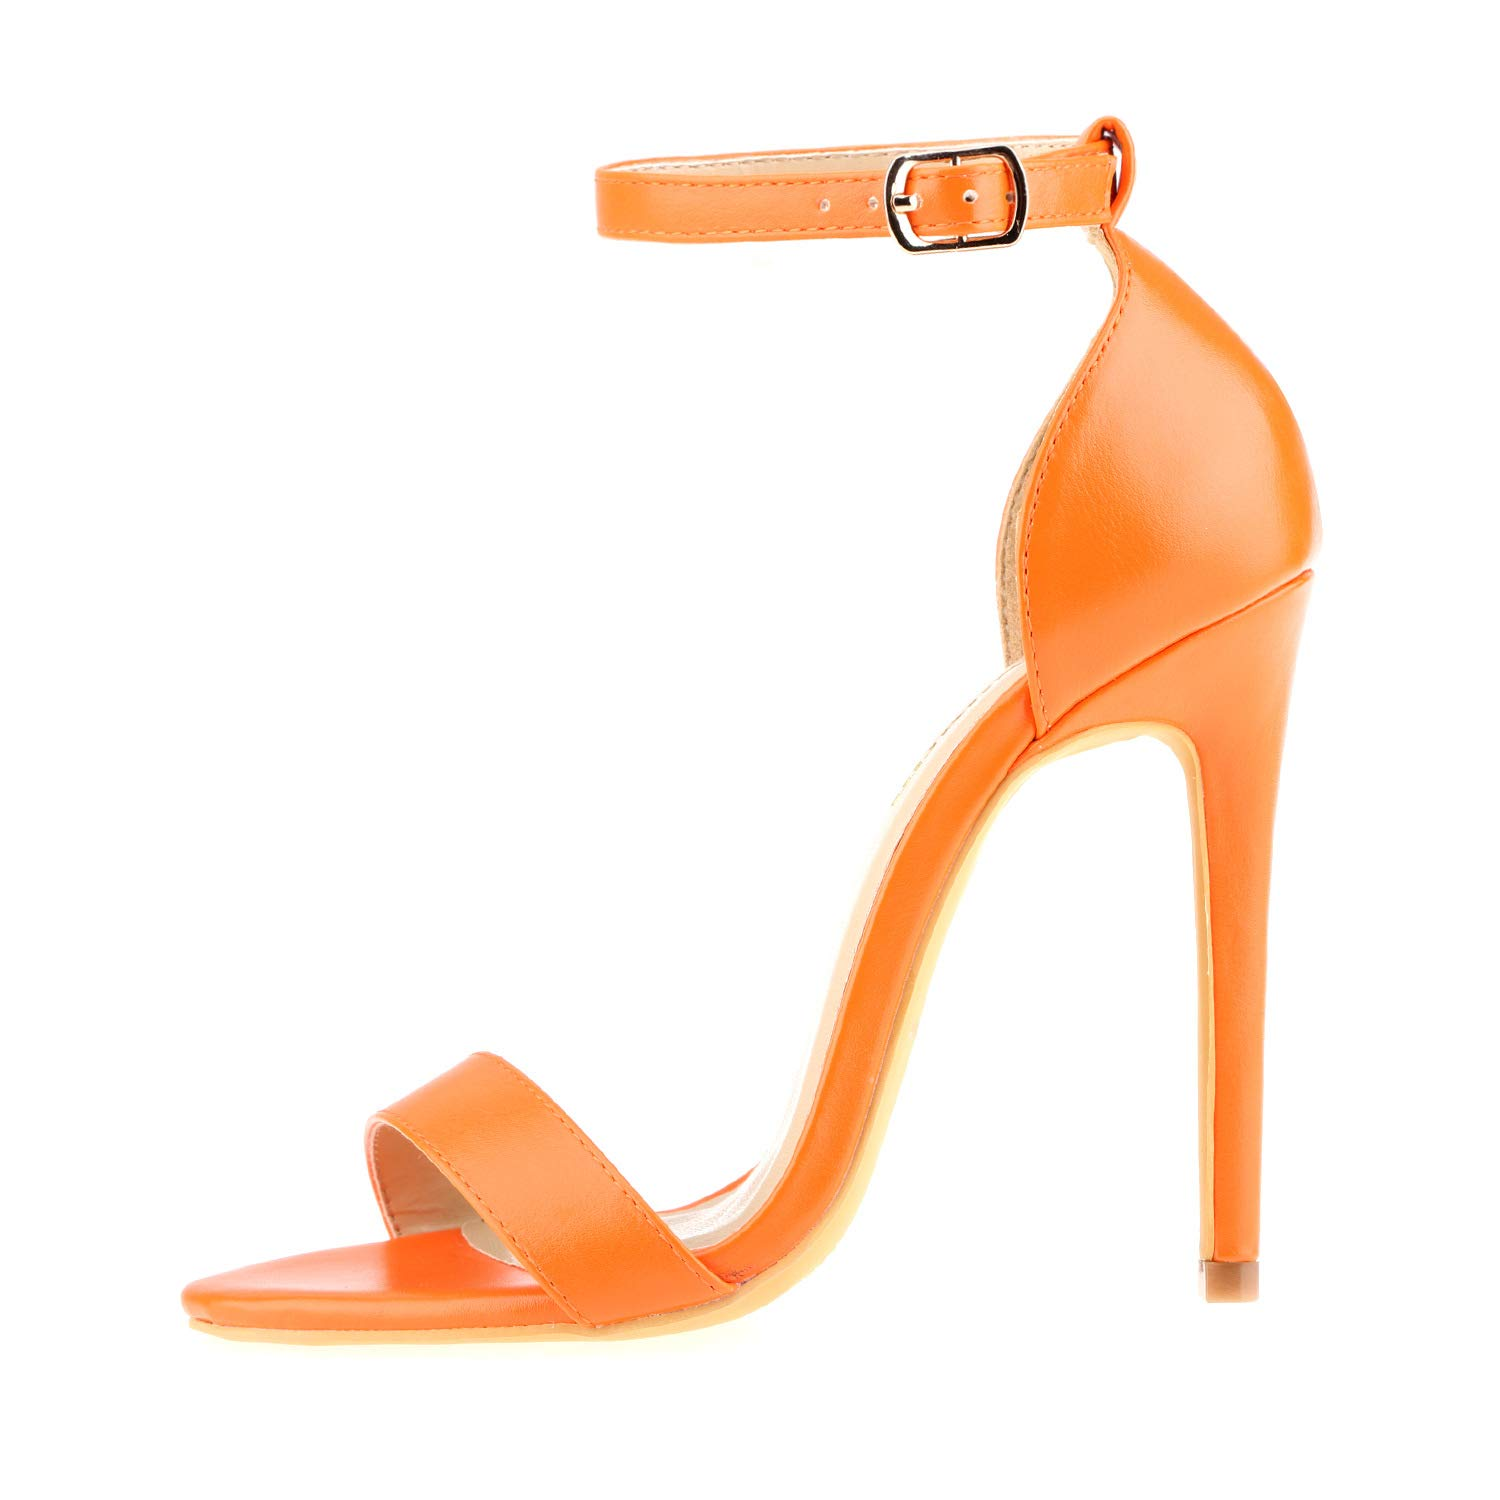 243ee39ecb Amazon.com   Women's Open Toe Stiletto High Heel Ankle Strap Sandals for  Dress Wedding Party Evening Shoes   Heeled Sandals